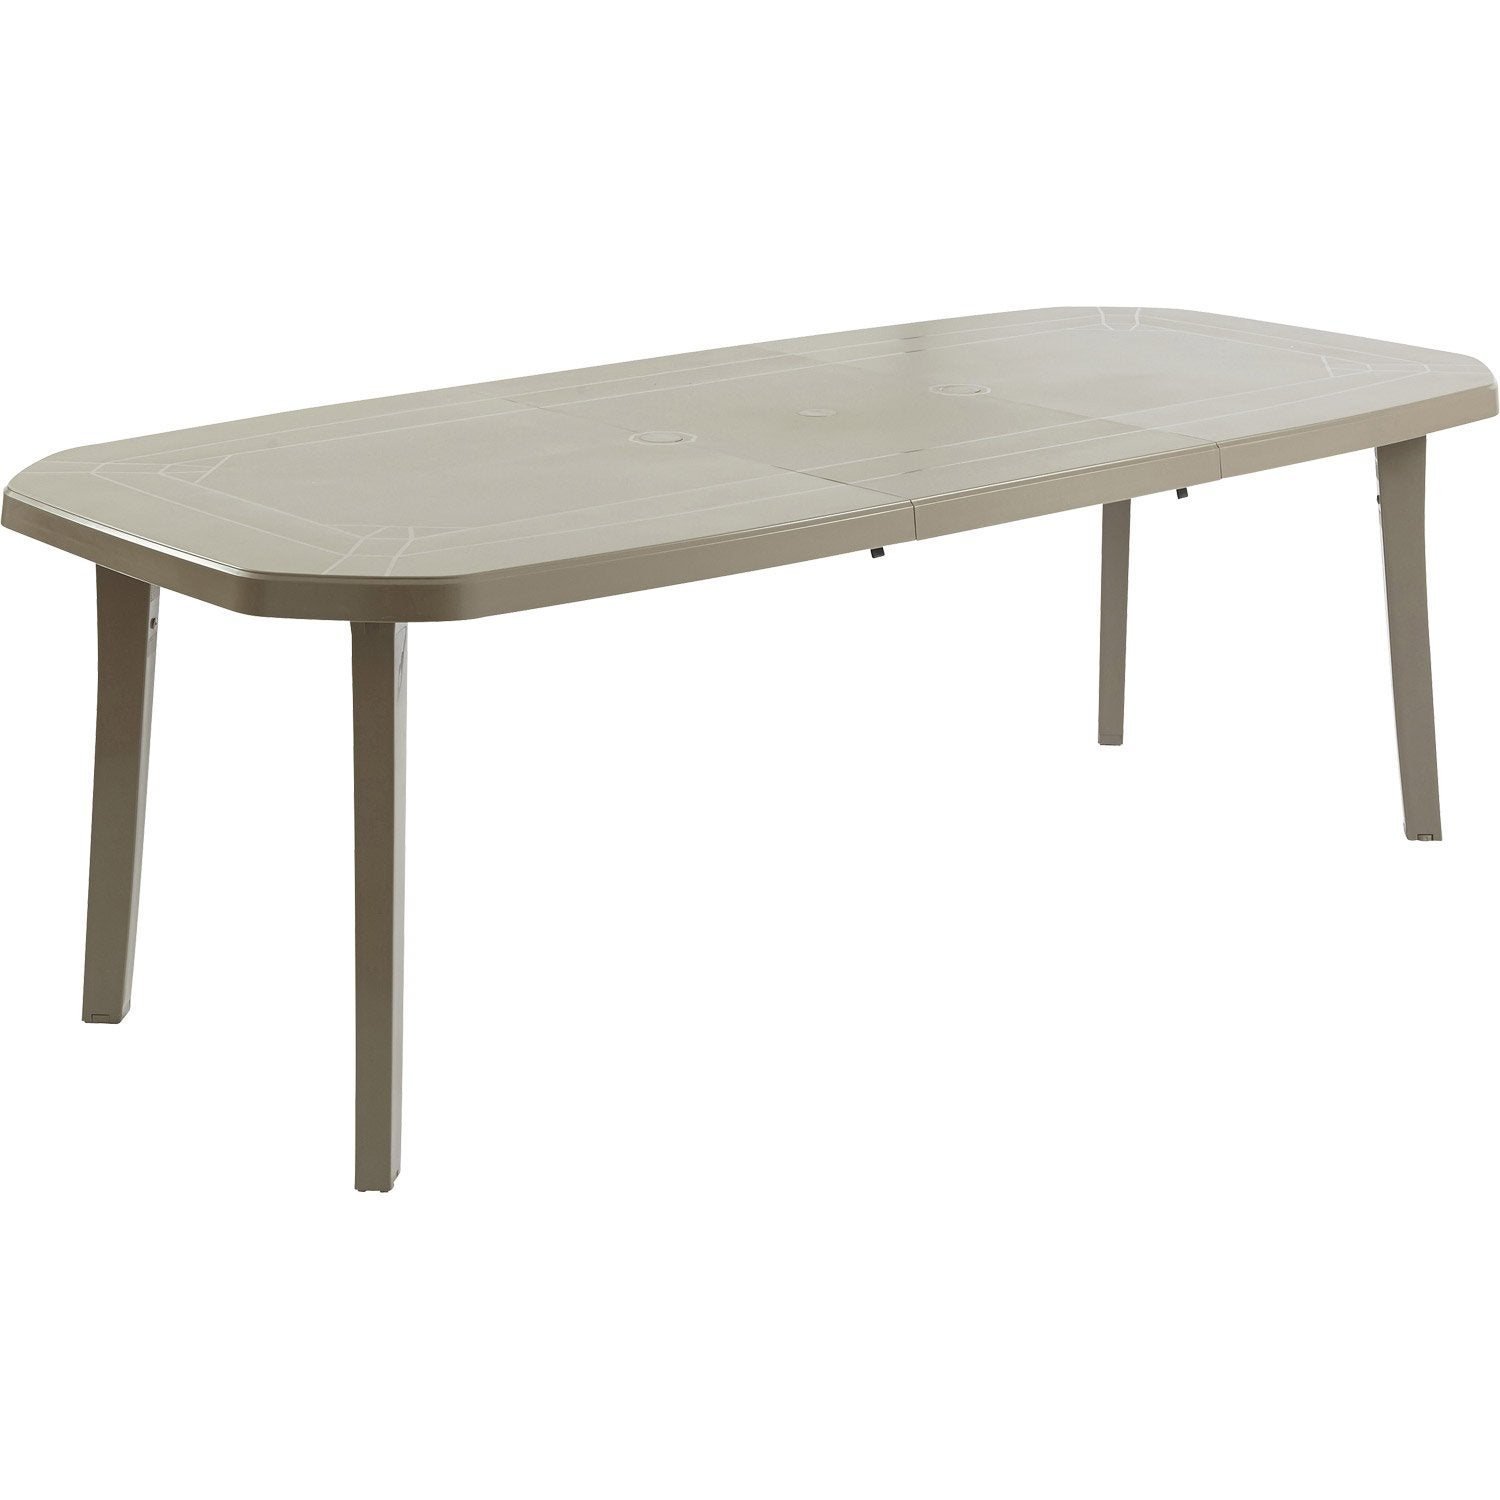 Table de jardin rectangulaire miami grosfillex leroy merlin for Table de jardin modulable